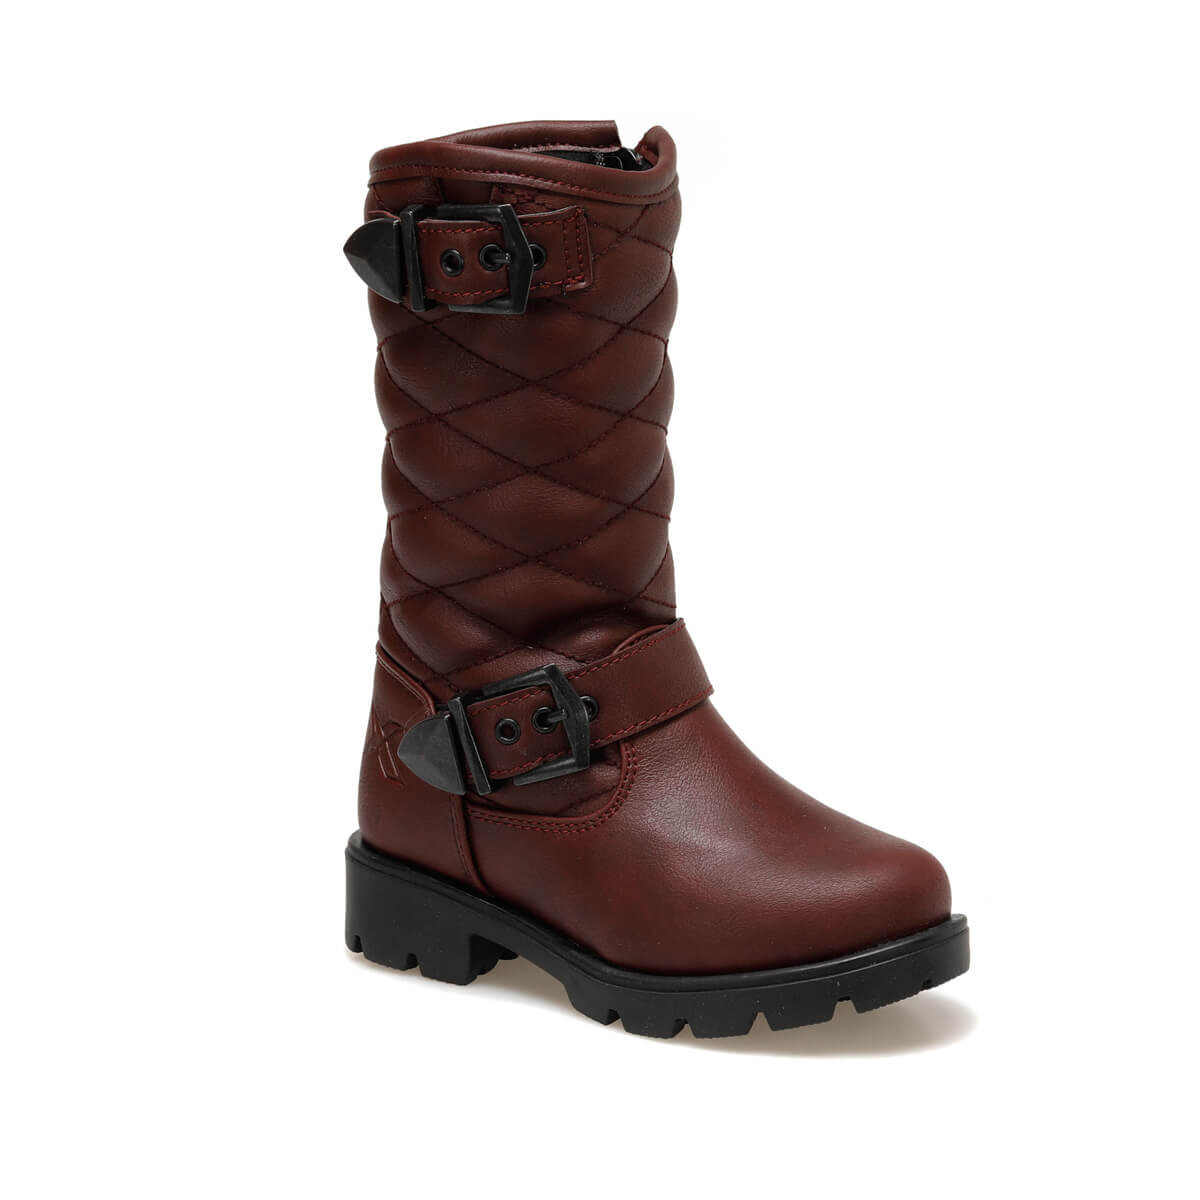 FLO LETUNE 9PR Burgundy Female Child Boots KINETIX